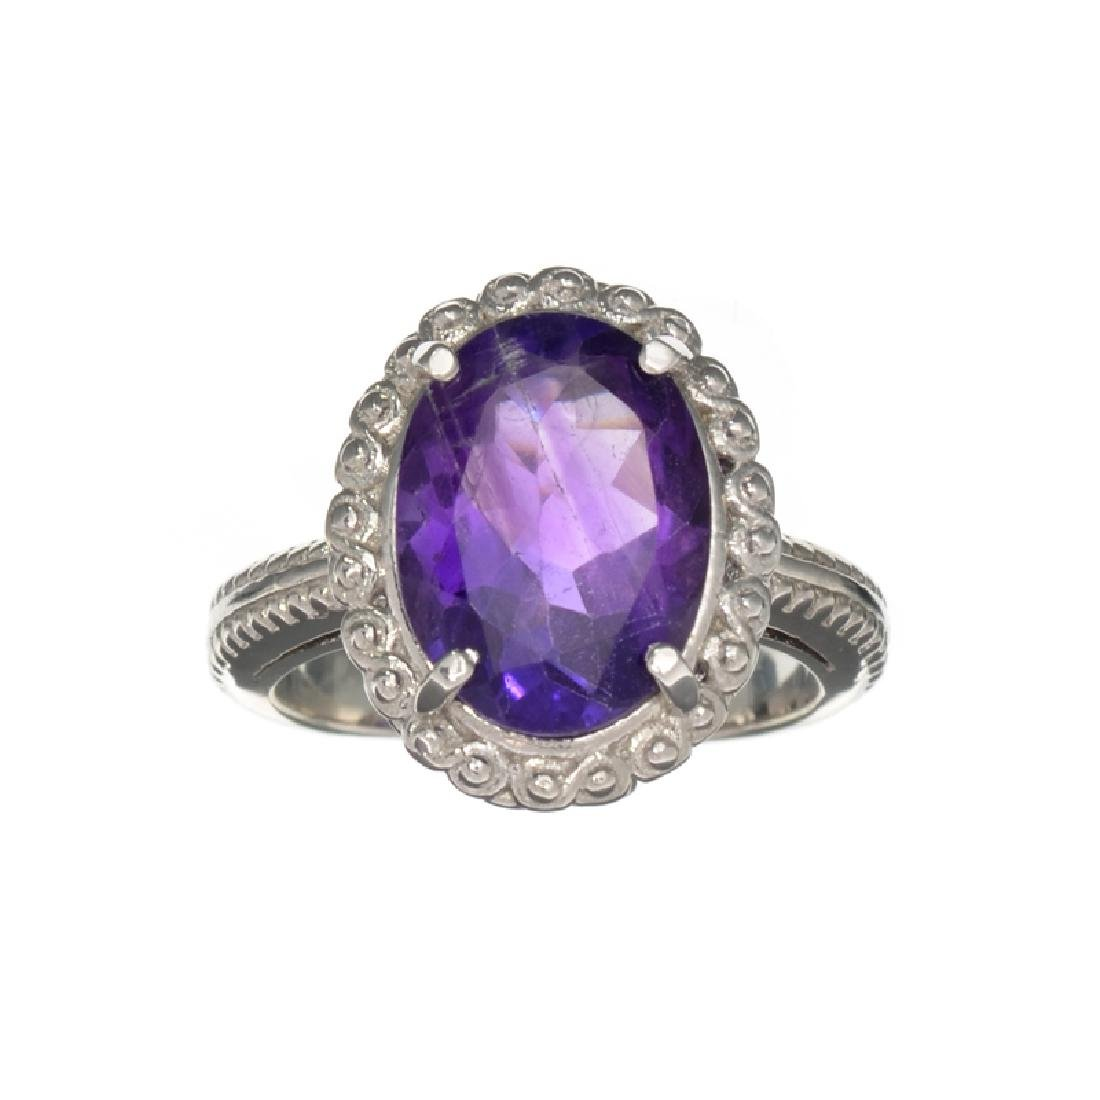 APP: 0.6k Fine Jewelry 5.47CT Purple Amethyst And